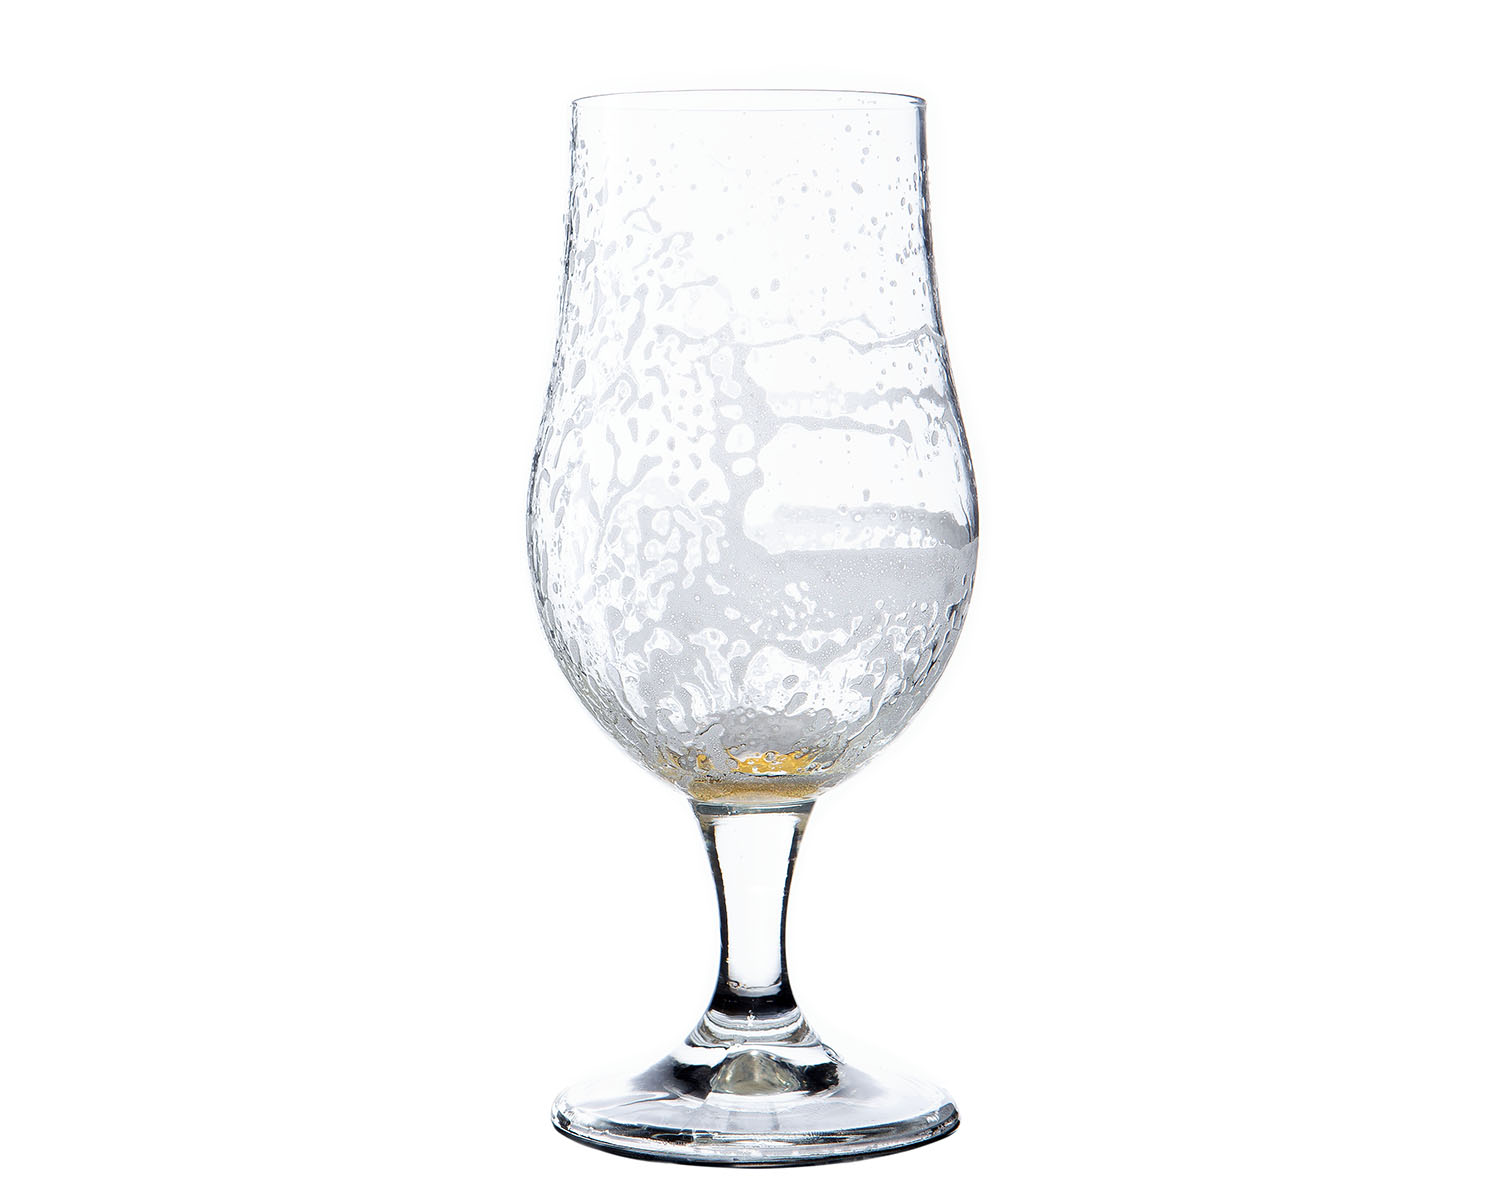 Emptied_glass_1500w.jpg